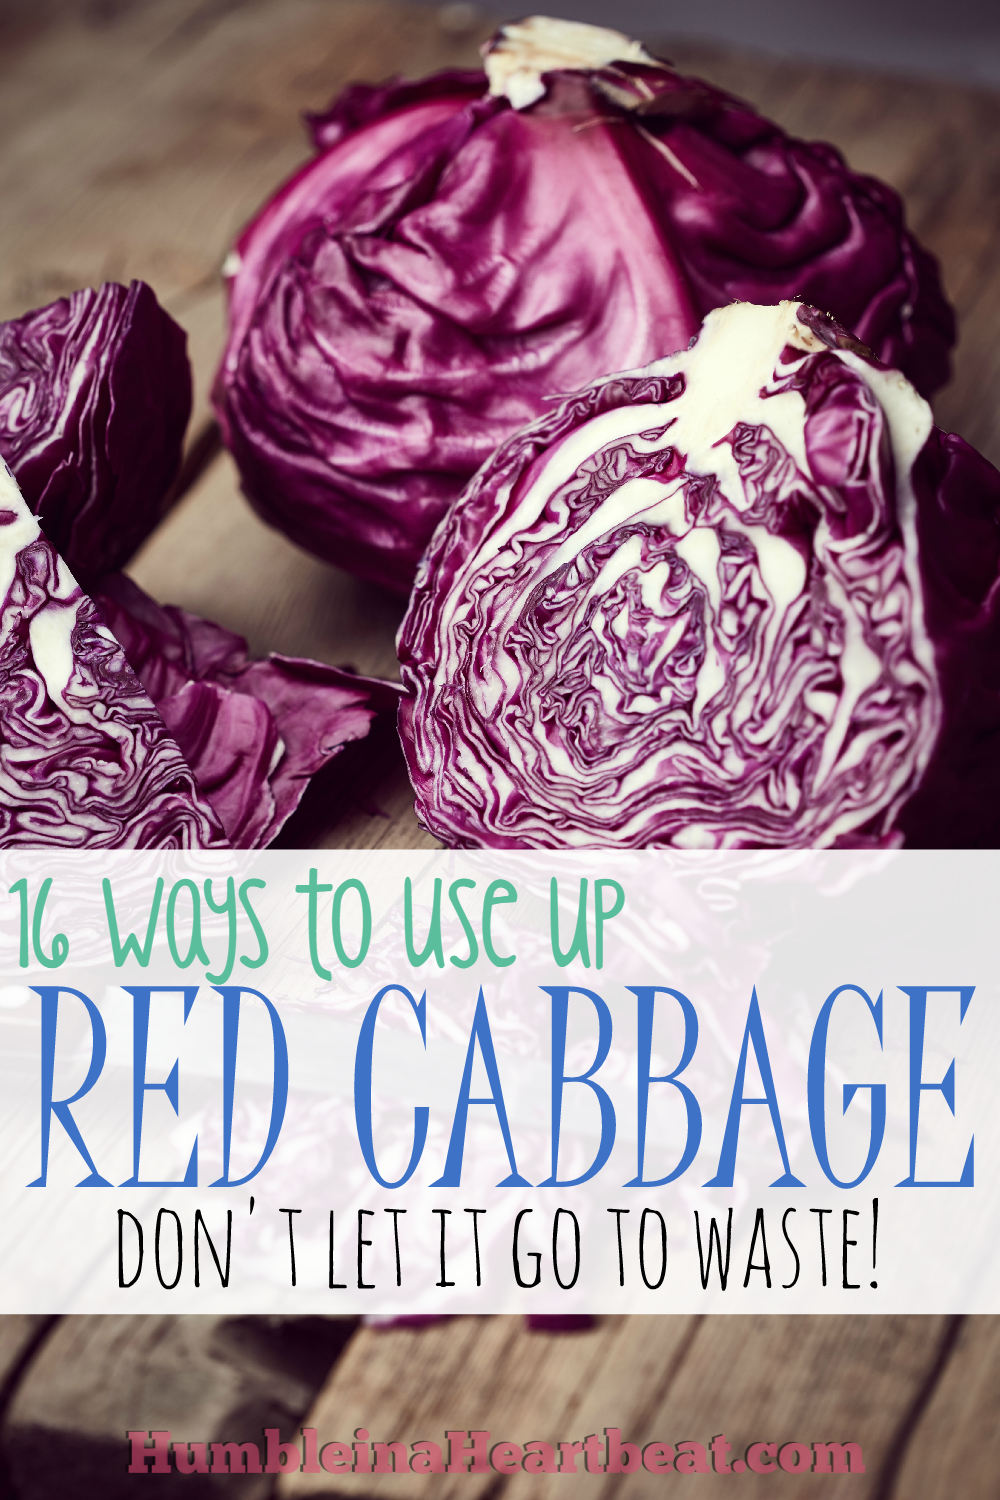 Ever bought some red cabbage for a recipe and then just let it sit in your fridge until it went bad? I have! Let's stop doing that and use it up with these great recipes!